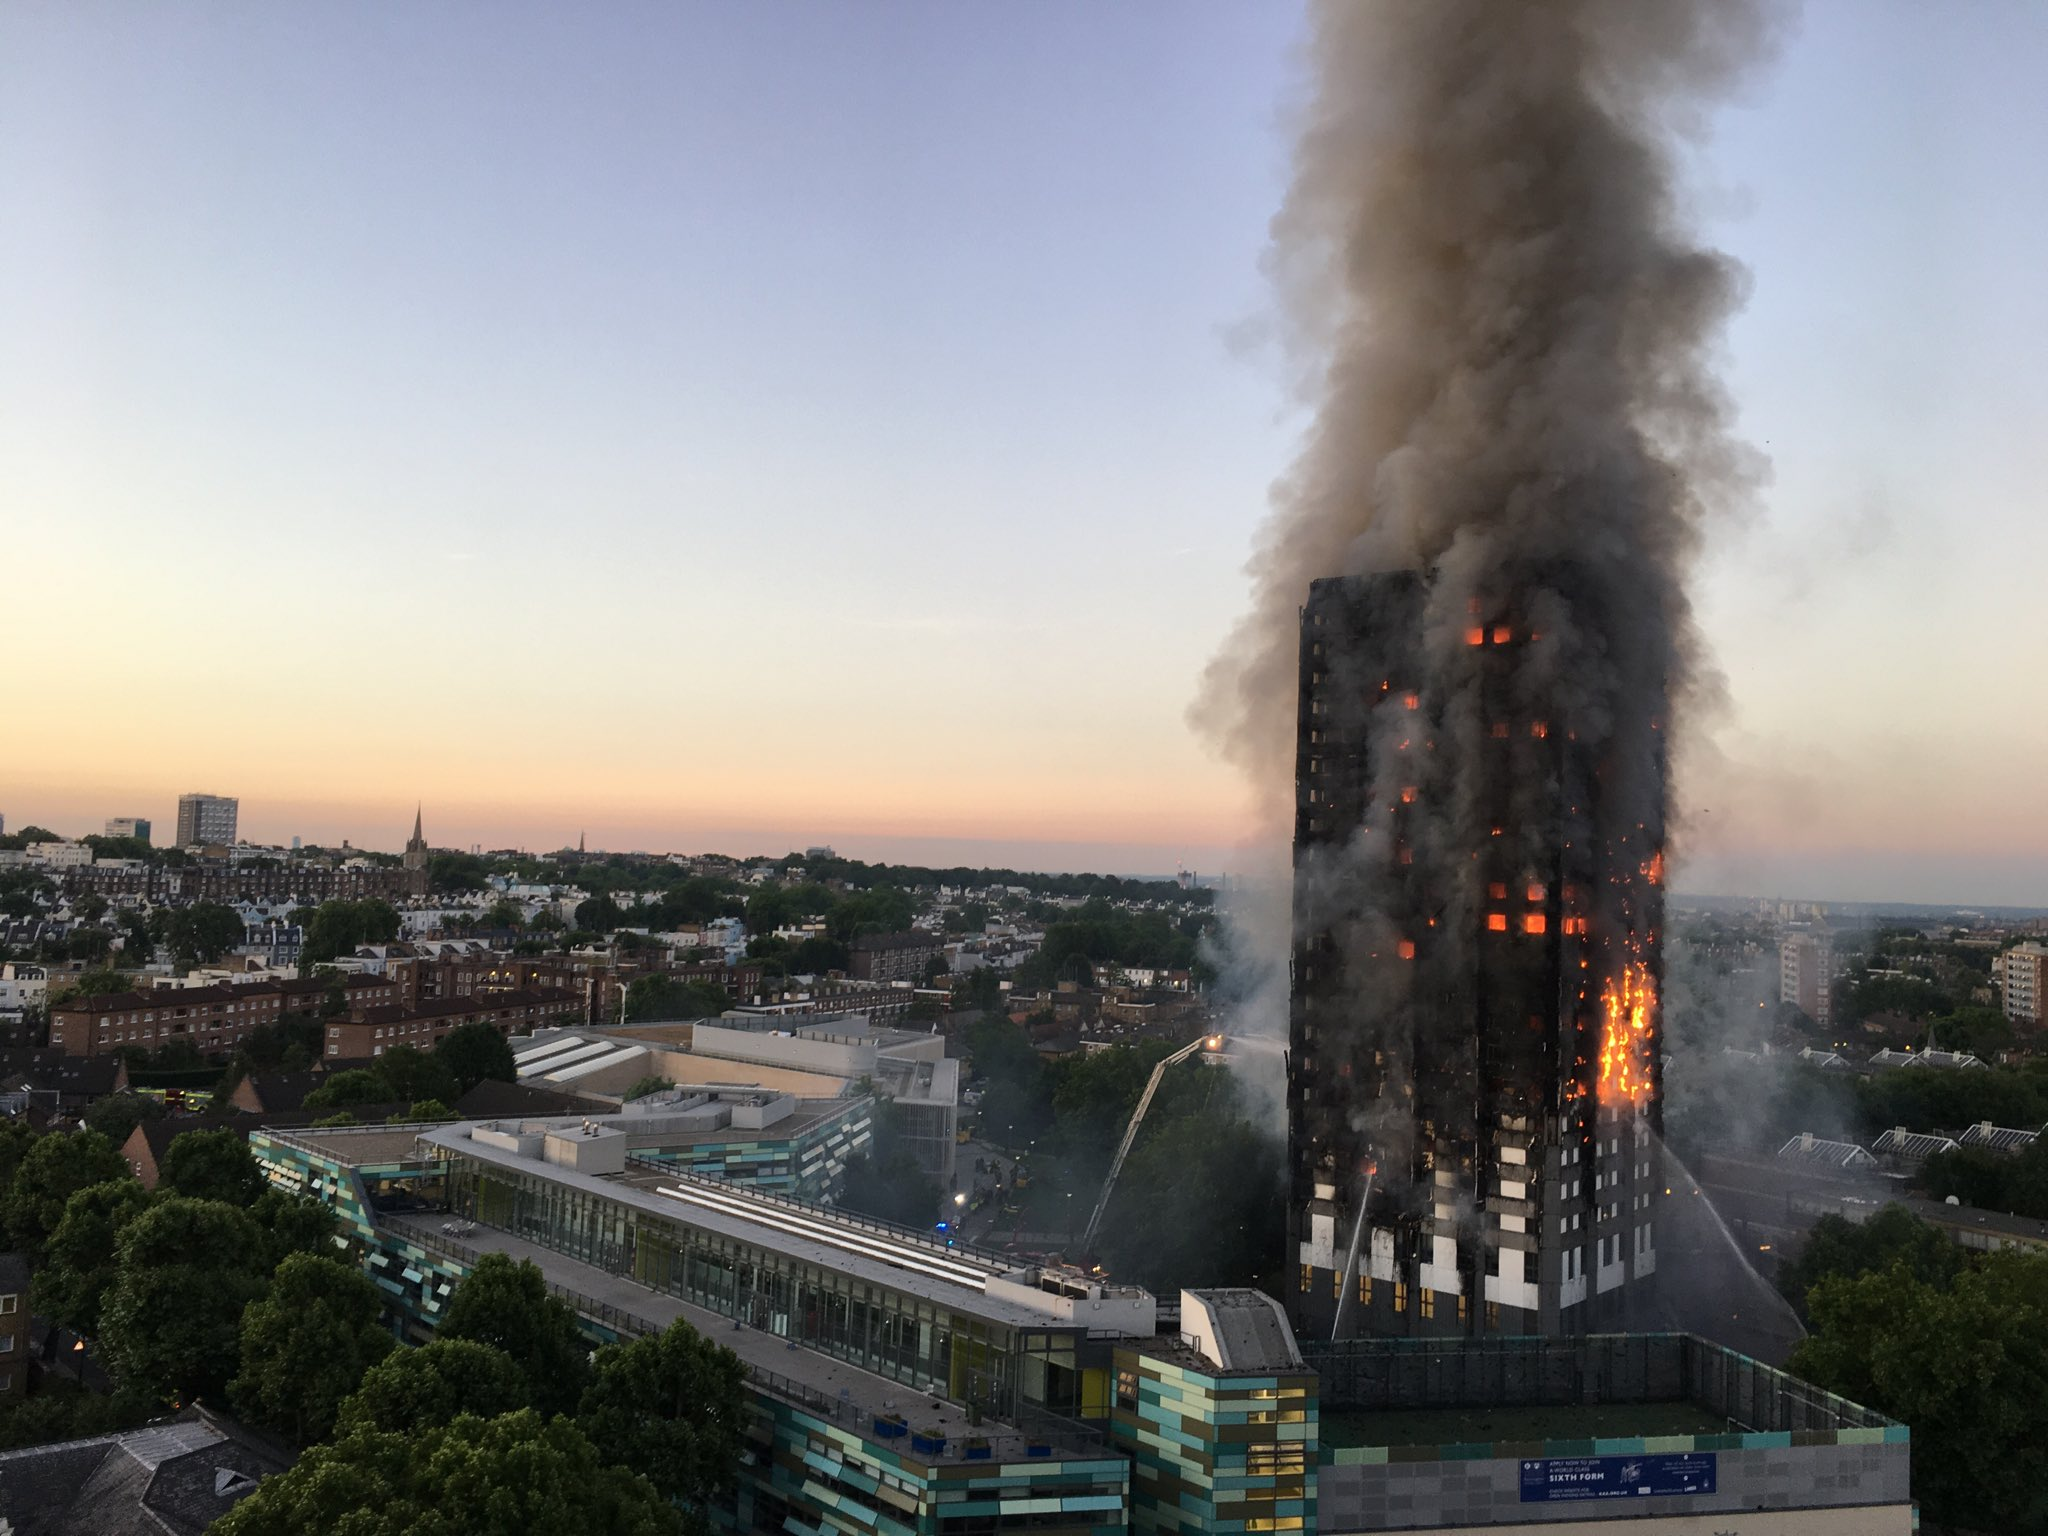 Ahmarra's response to the fire door issue identified at Grenfell Tower